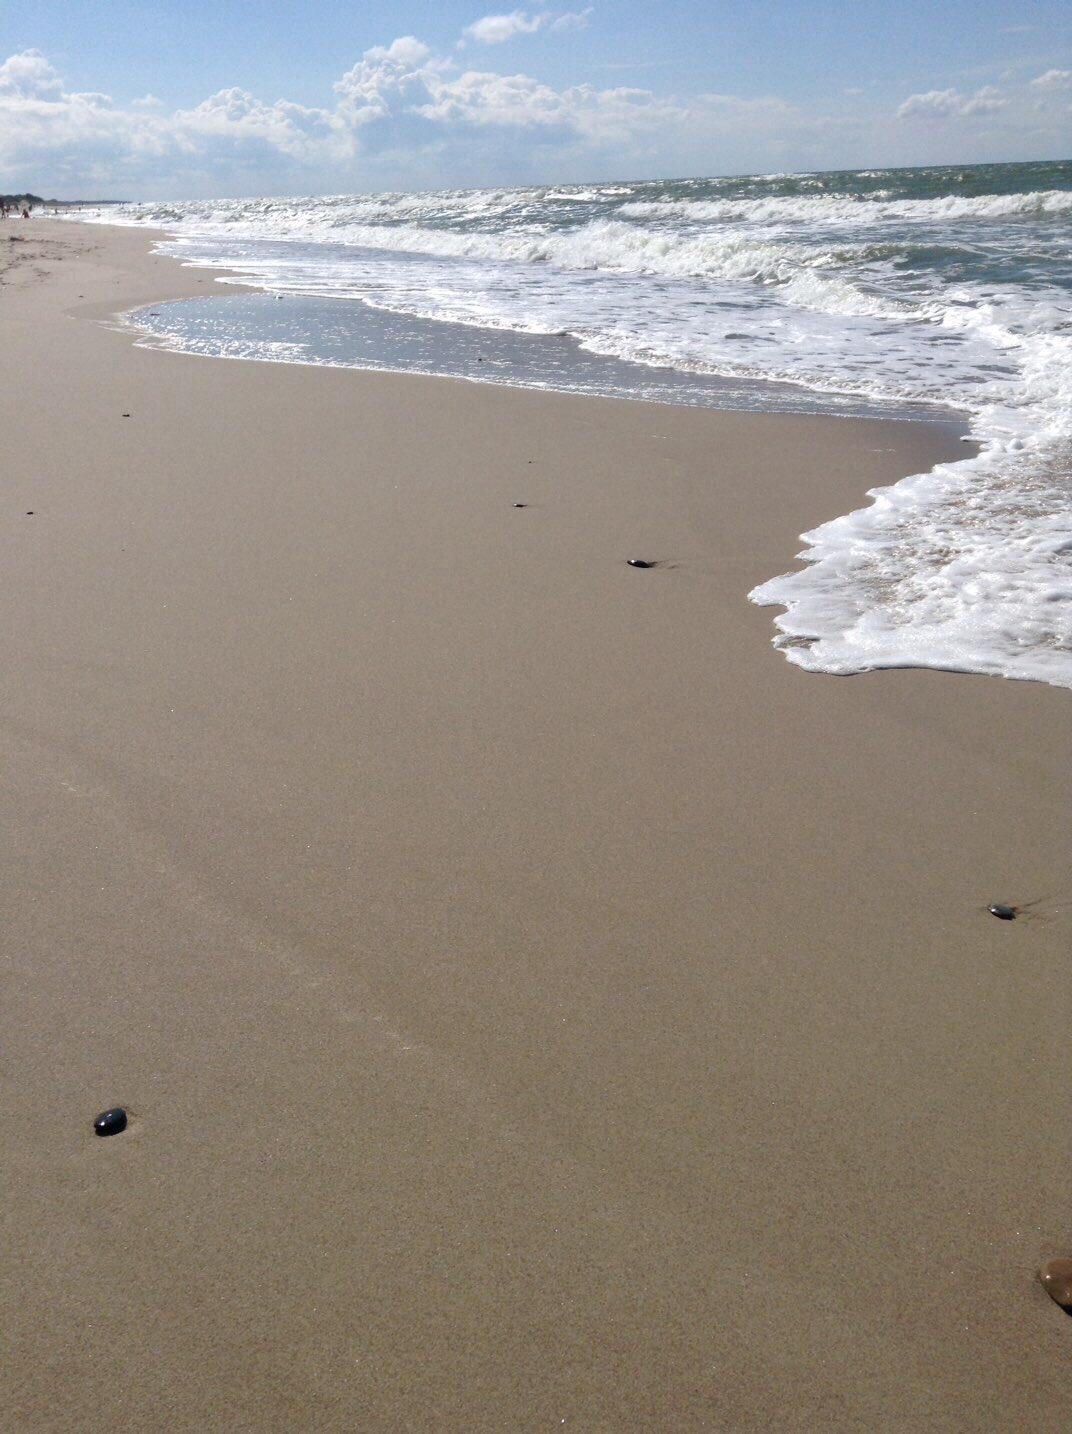 Sandy Beach and Waves Image